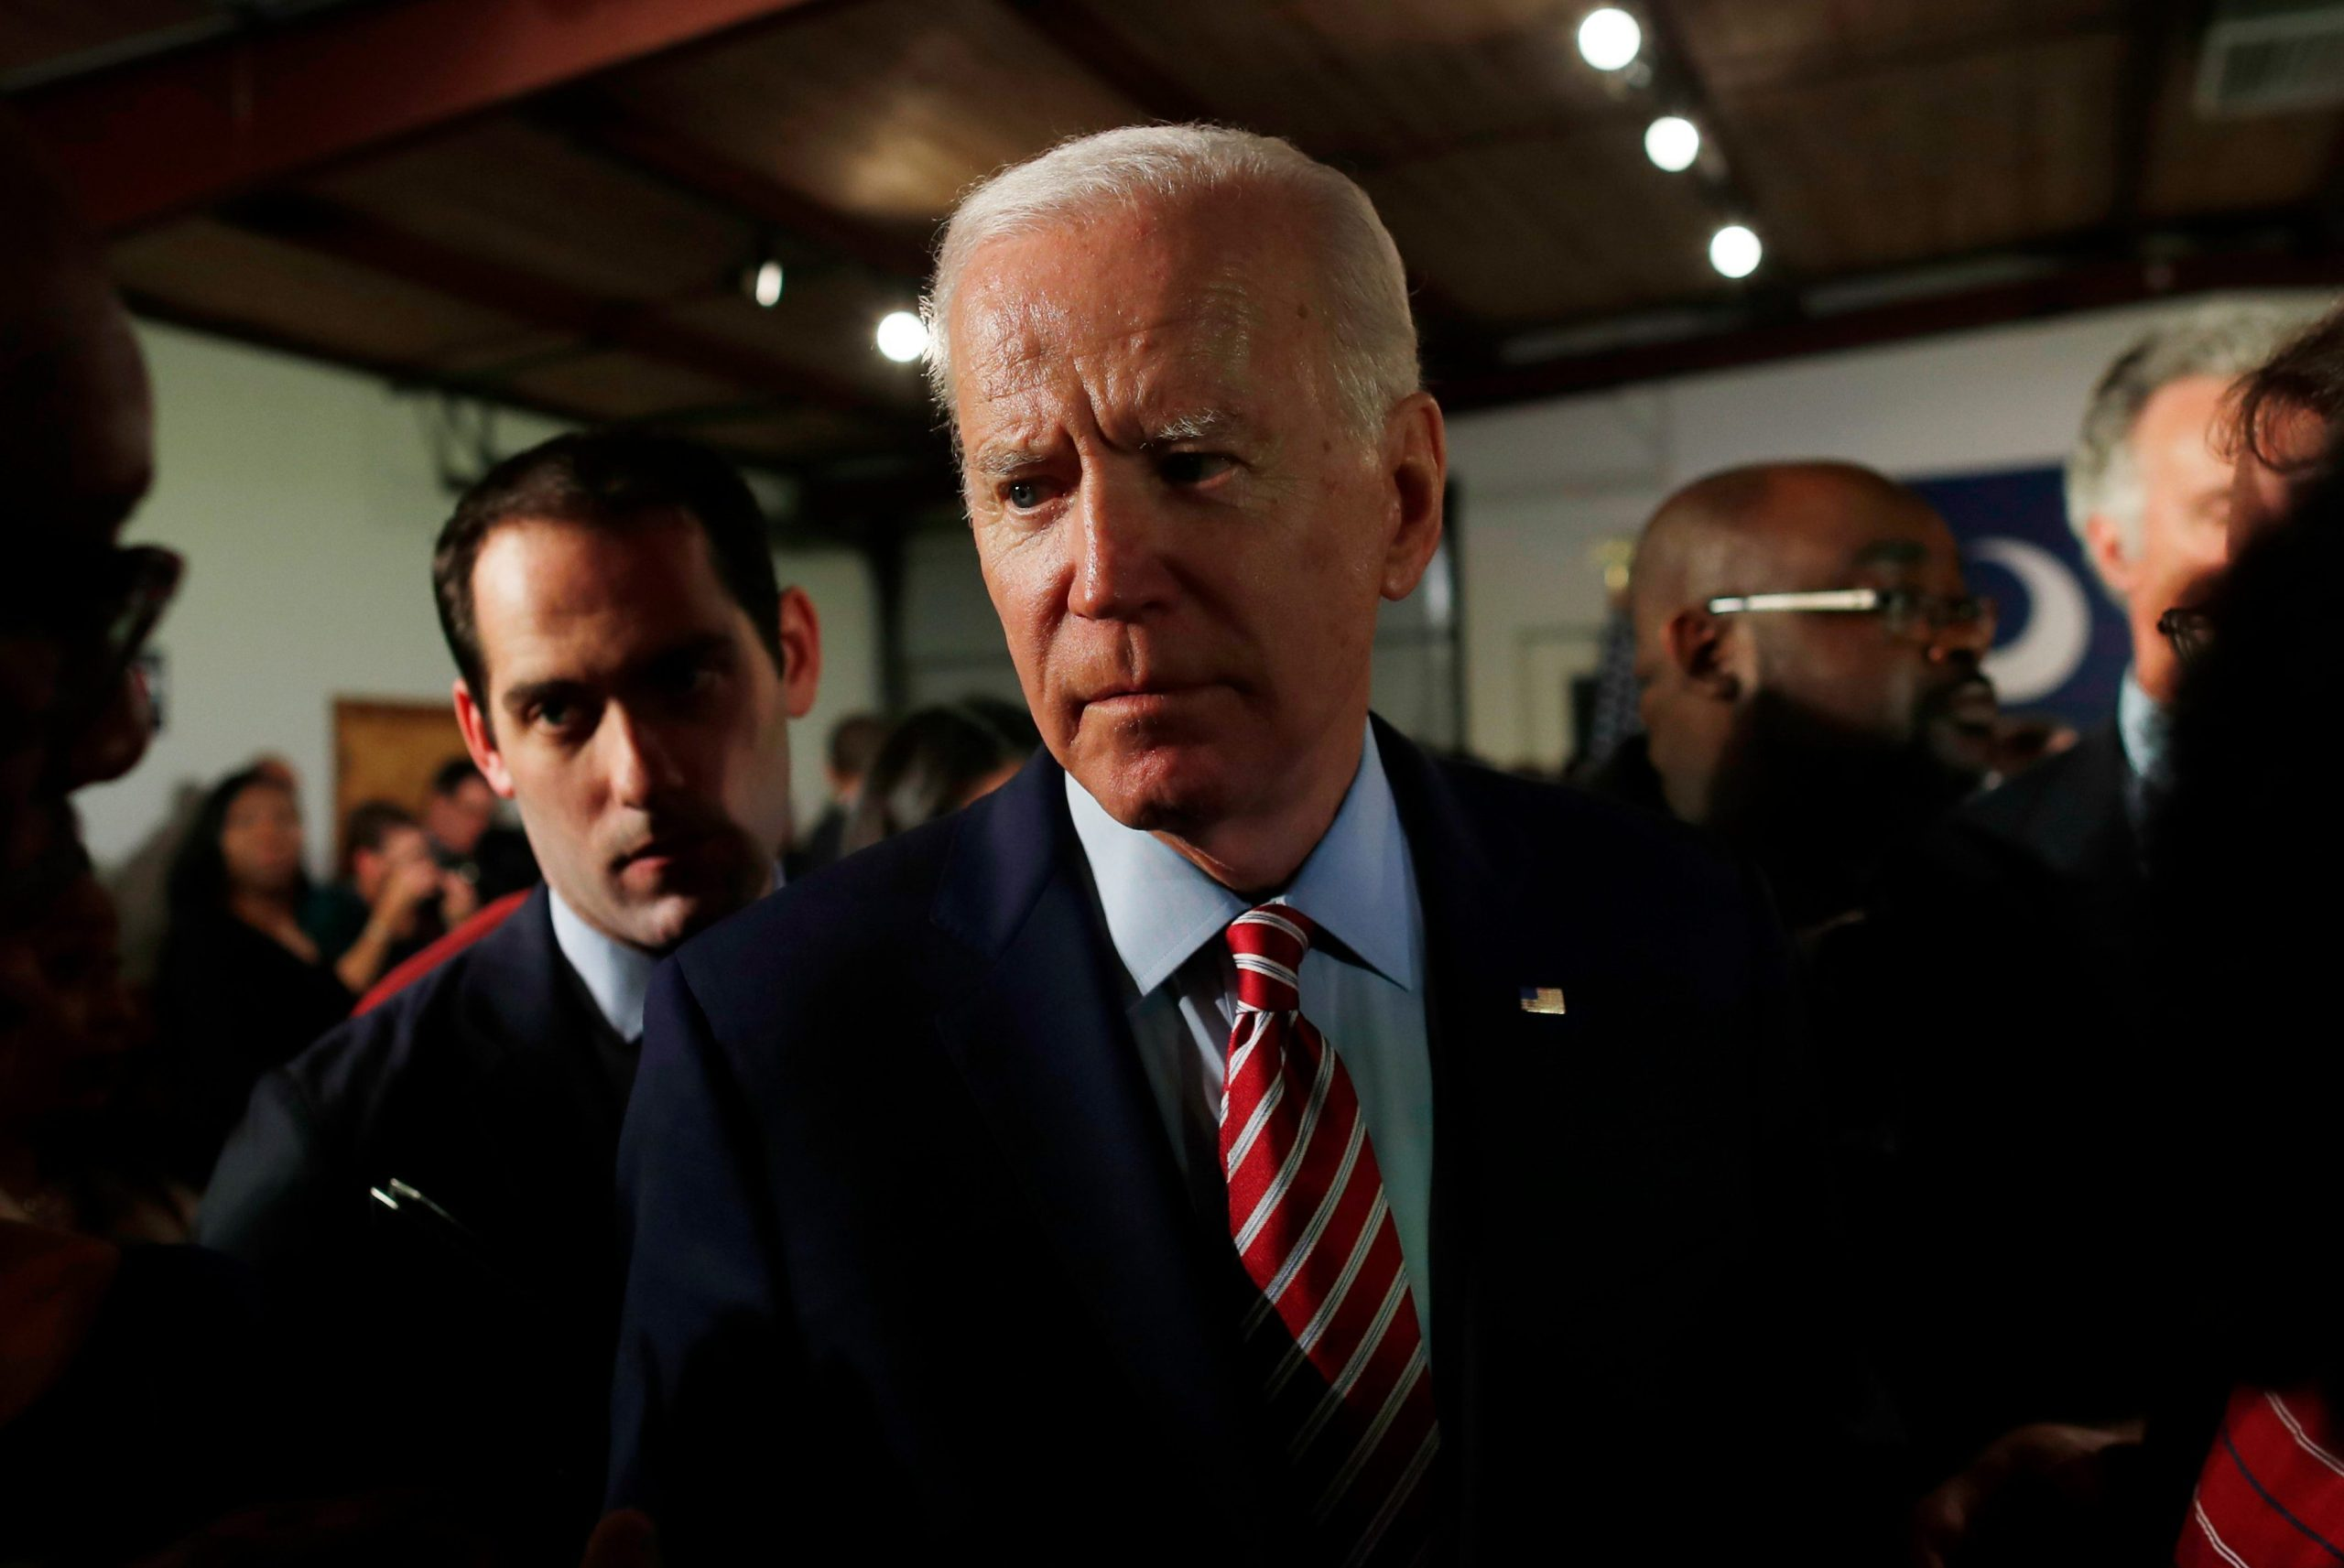 Biden does not intend to solve the problems of the Americans, but has already given clear guarantees for the oligarchy